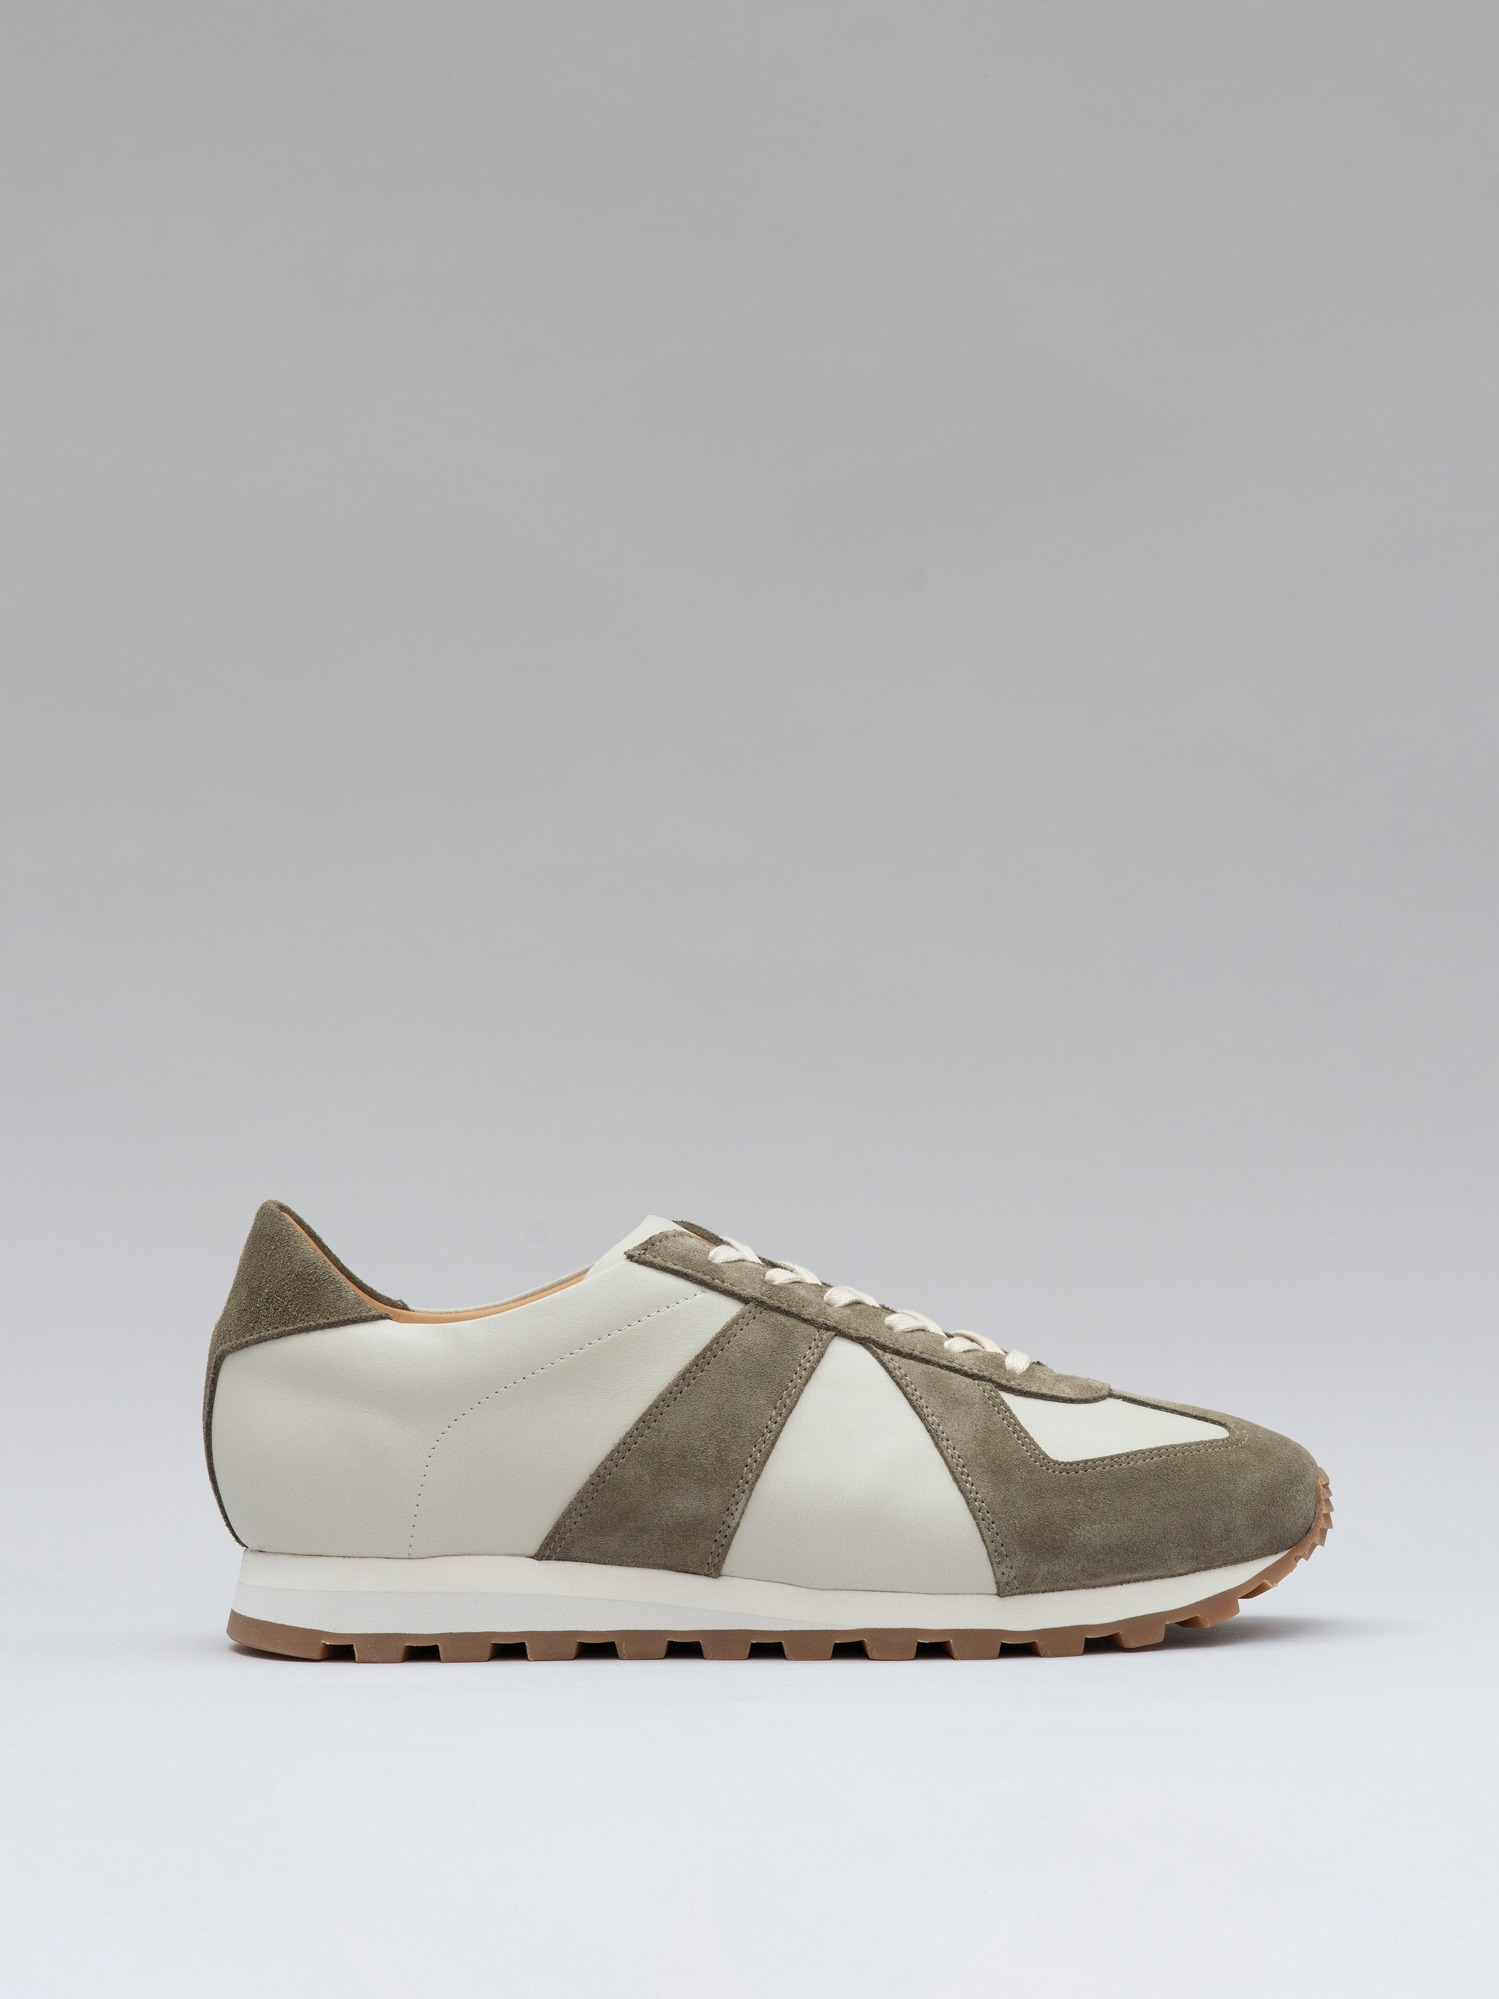 balmoral 07 suede/leather grey